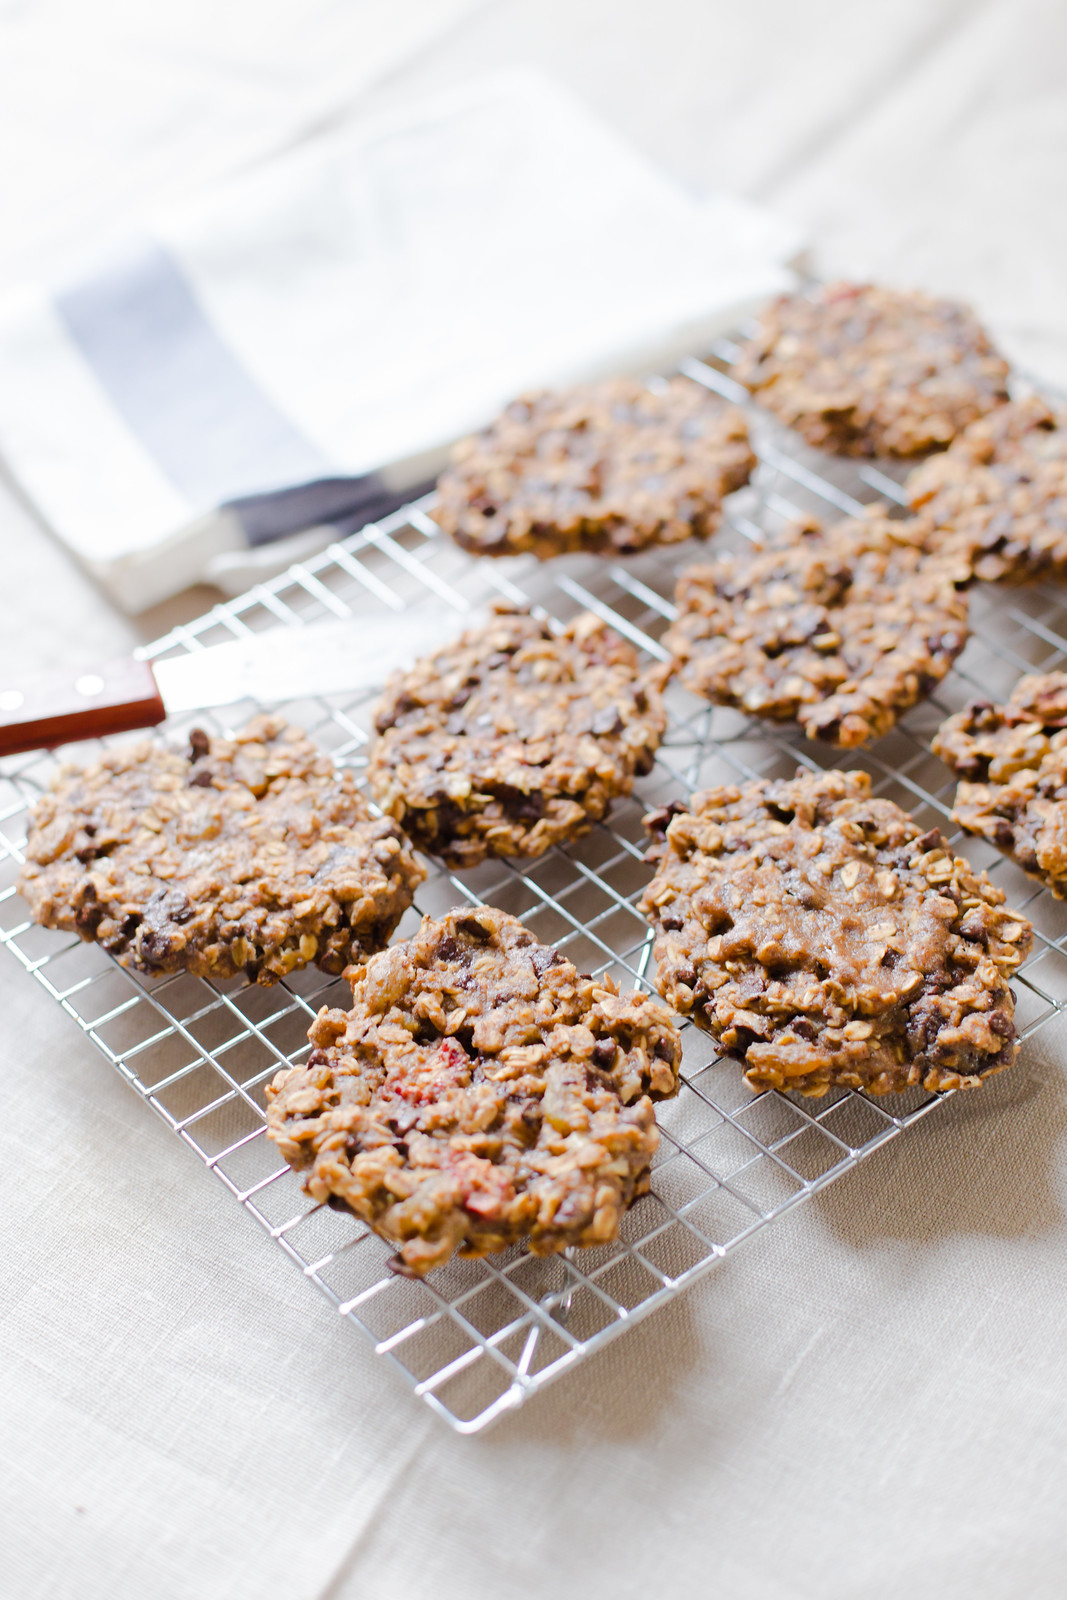 Oatmeal and Chocolate Breakfast Cookies